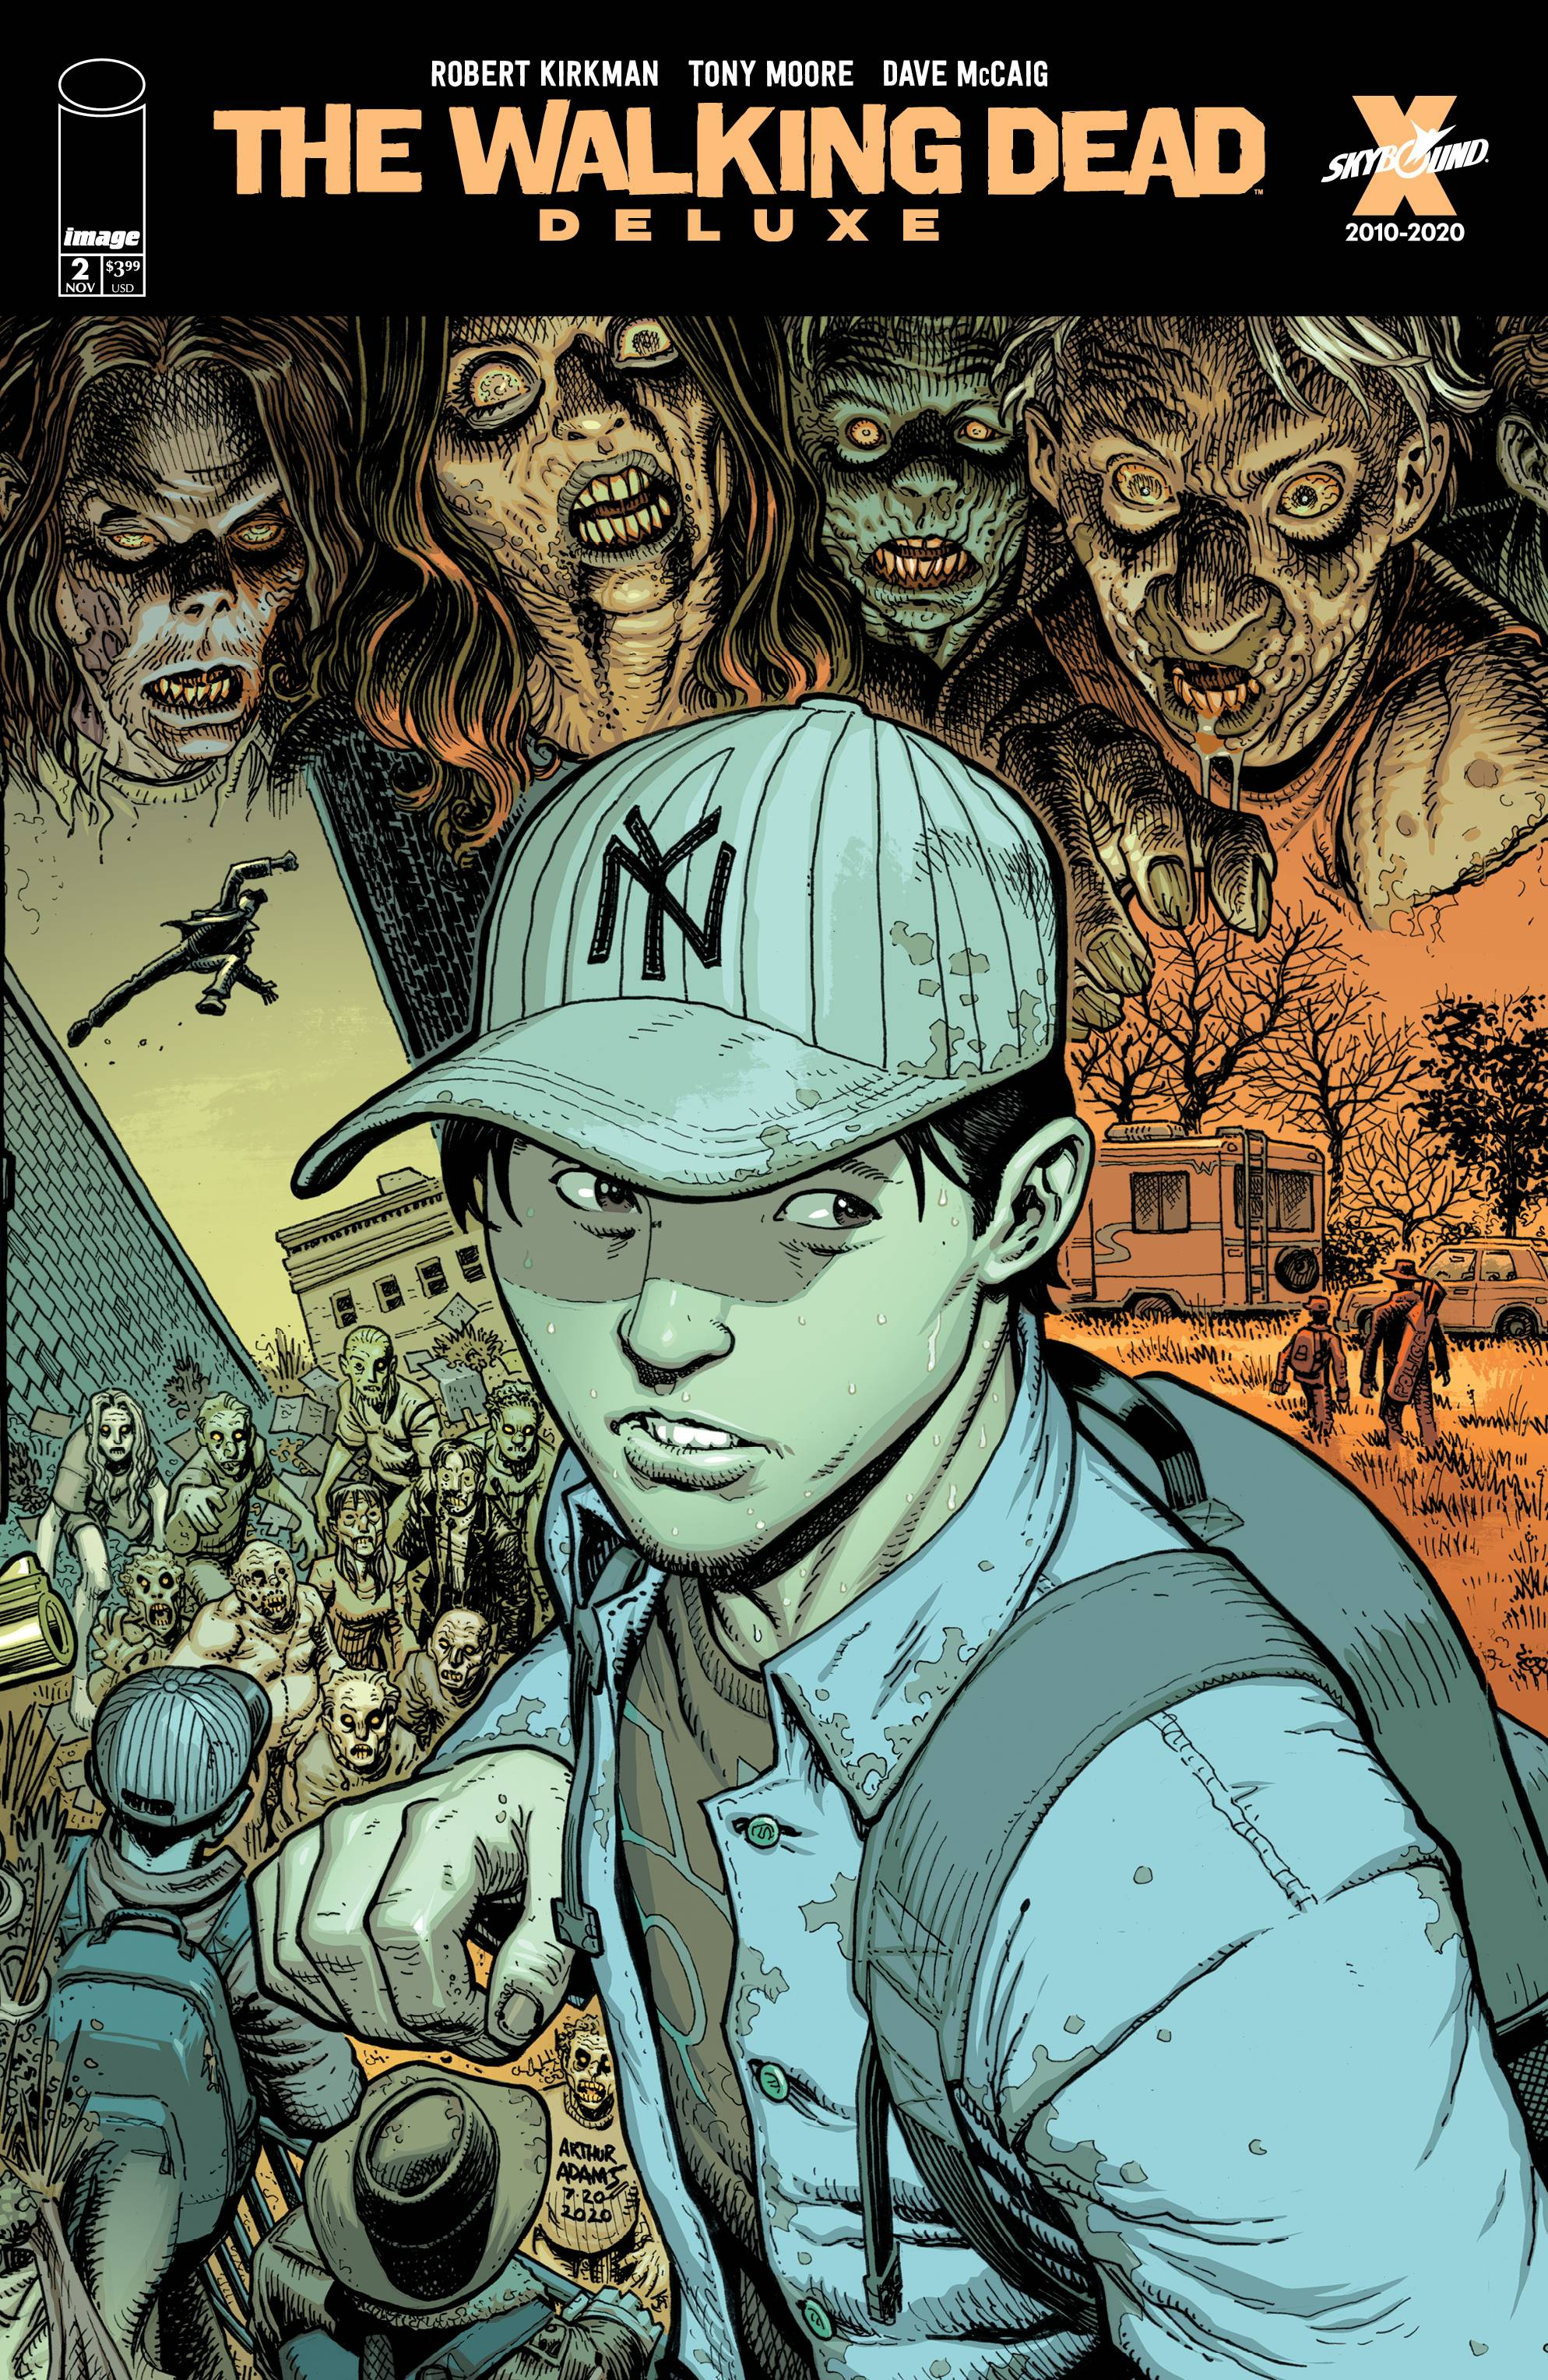 WALKING DEAD DLX #2 CVR E ADAMS & MCCAIG (MR)